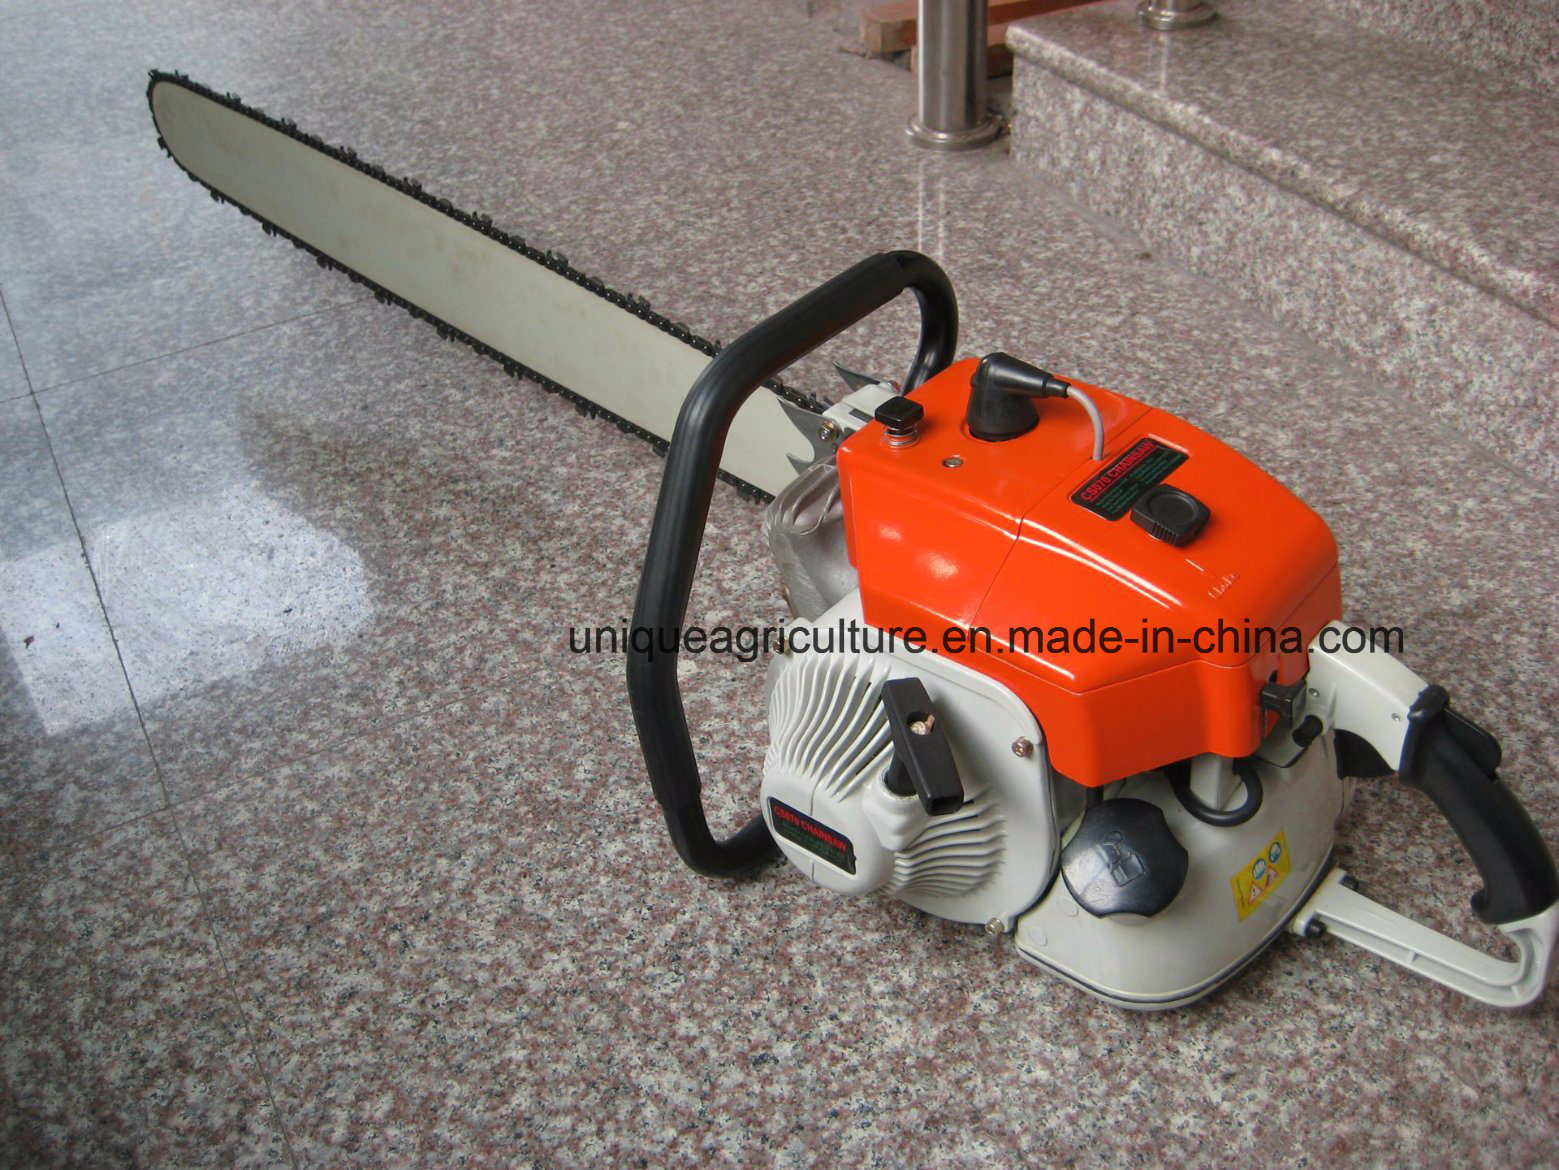 Unique High Quality 070 Chainsaw